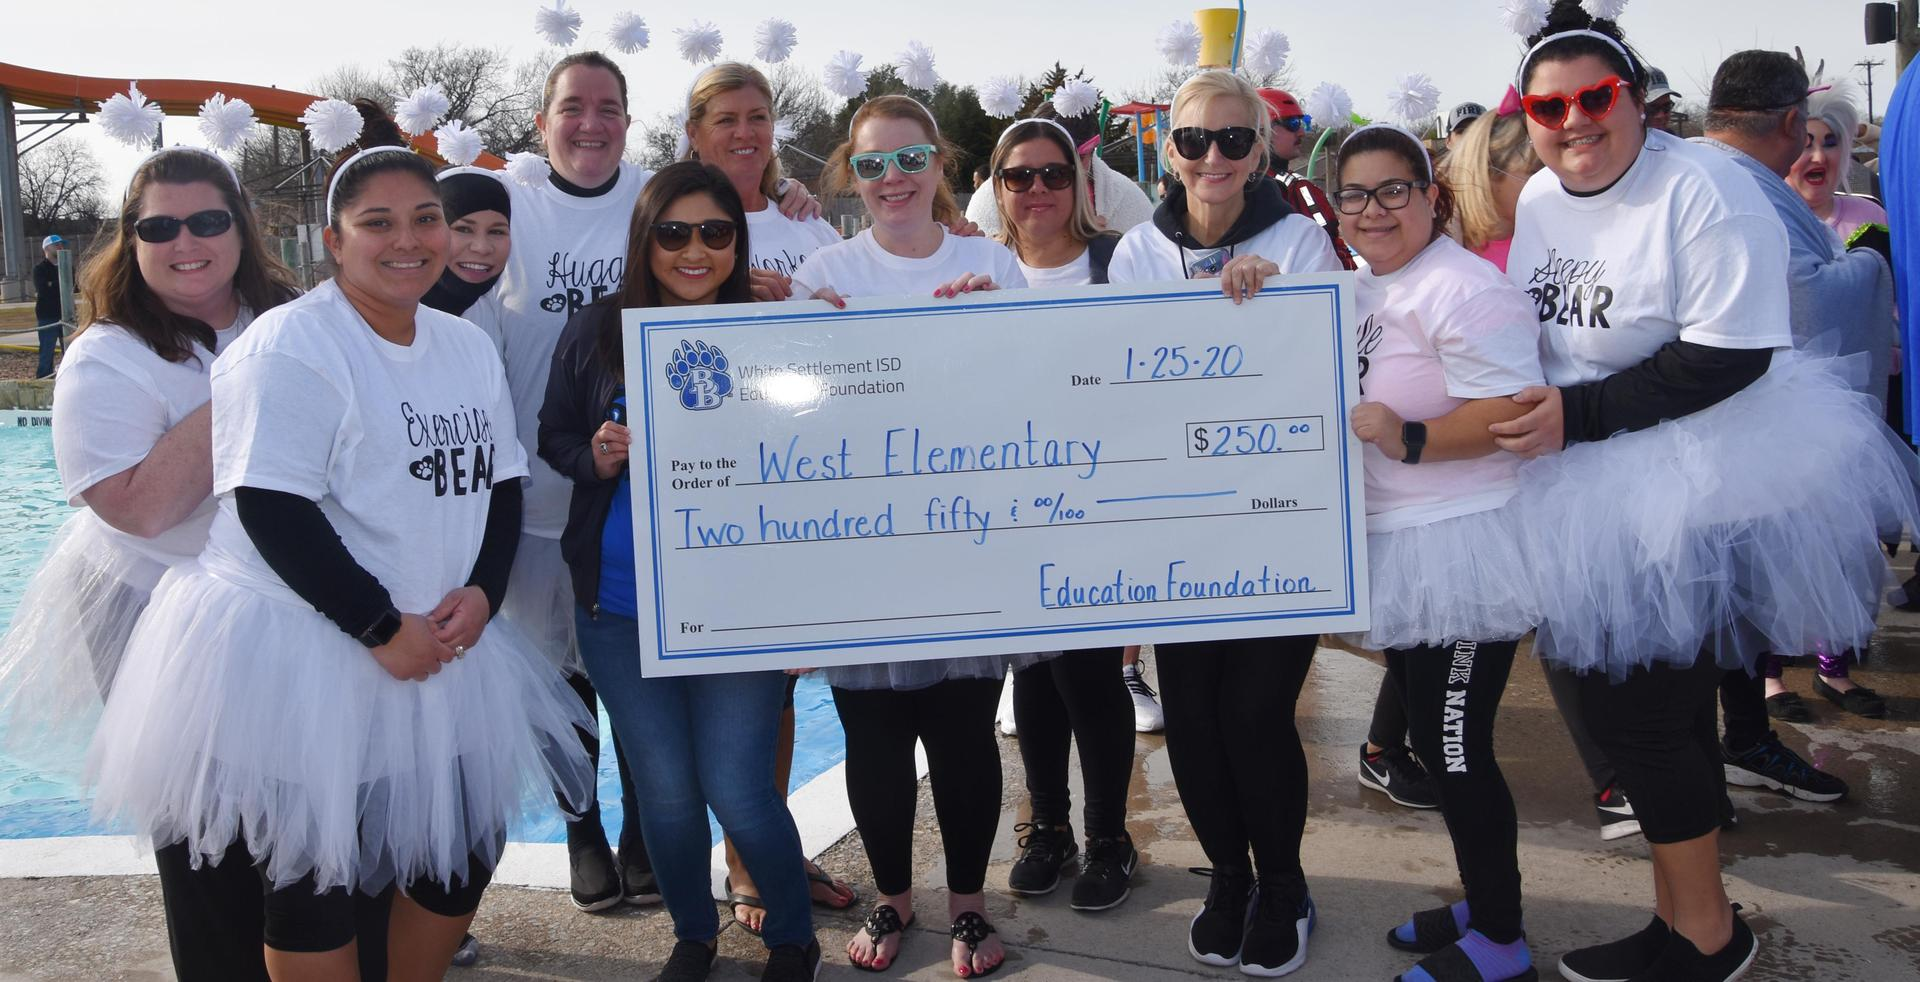 West Elementary - 3rd Place - Most Money Raised